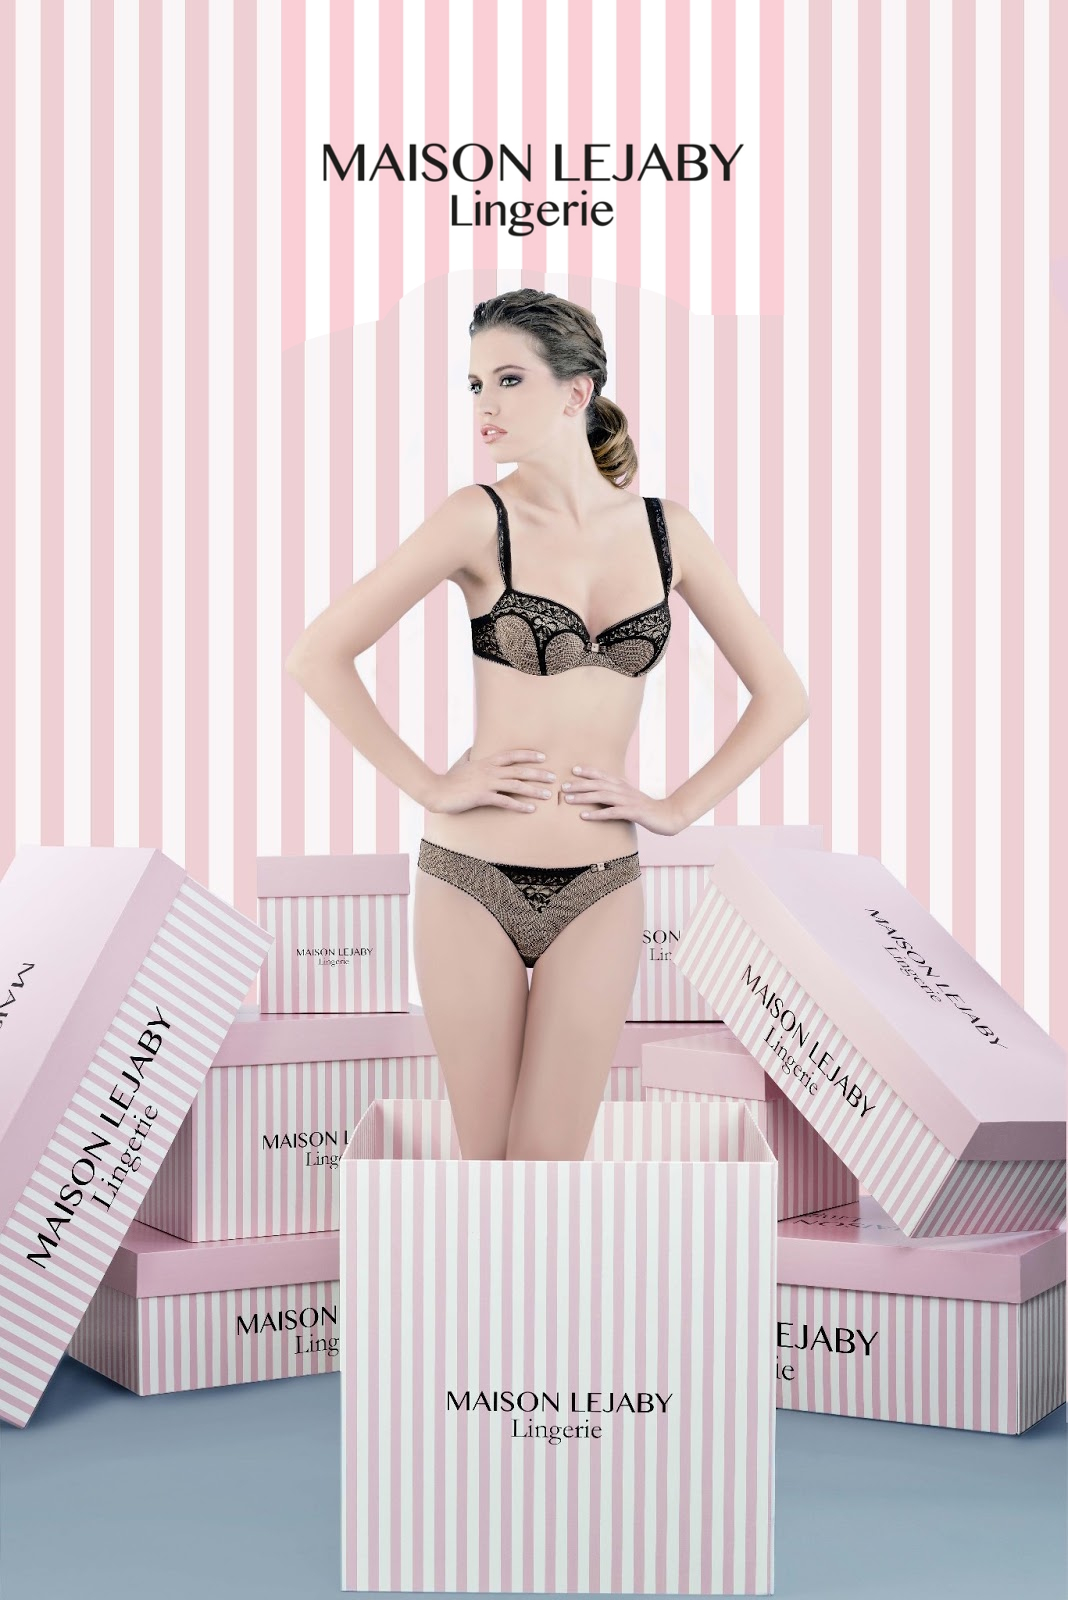 42ae41449 Women lingerie mix - Maison Lejaby - Fashion Stocks GmbH